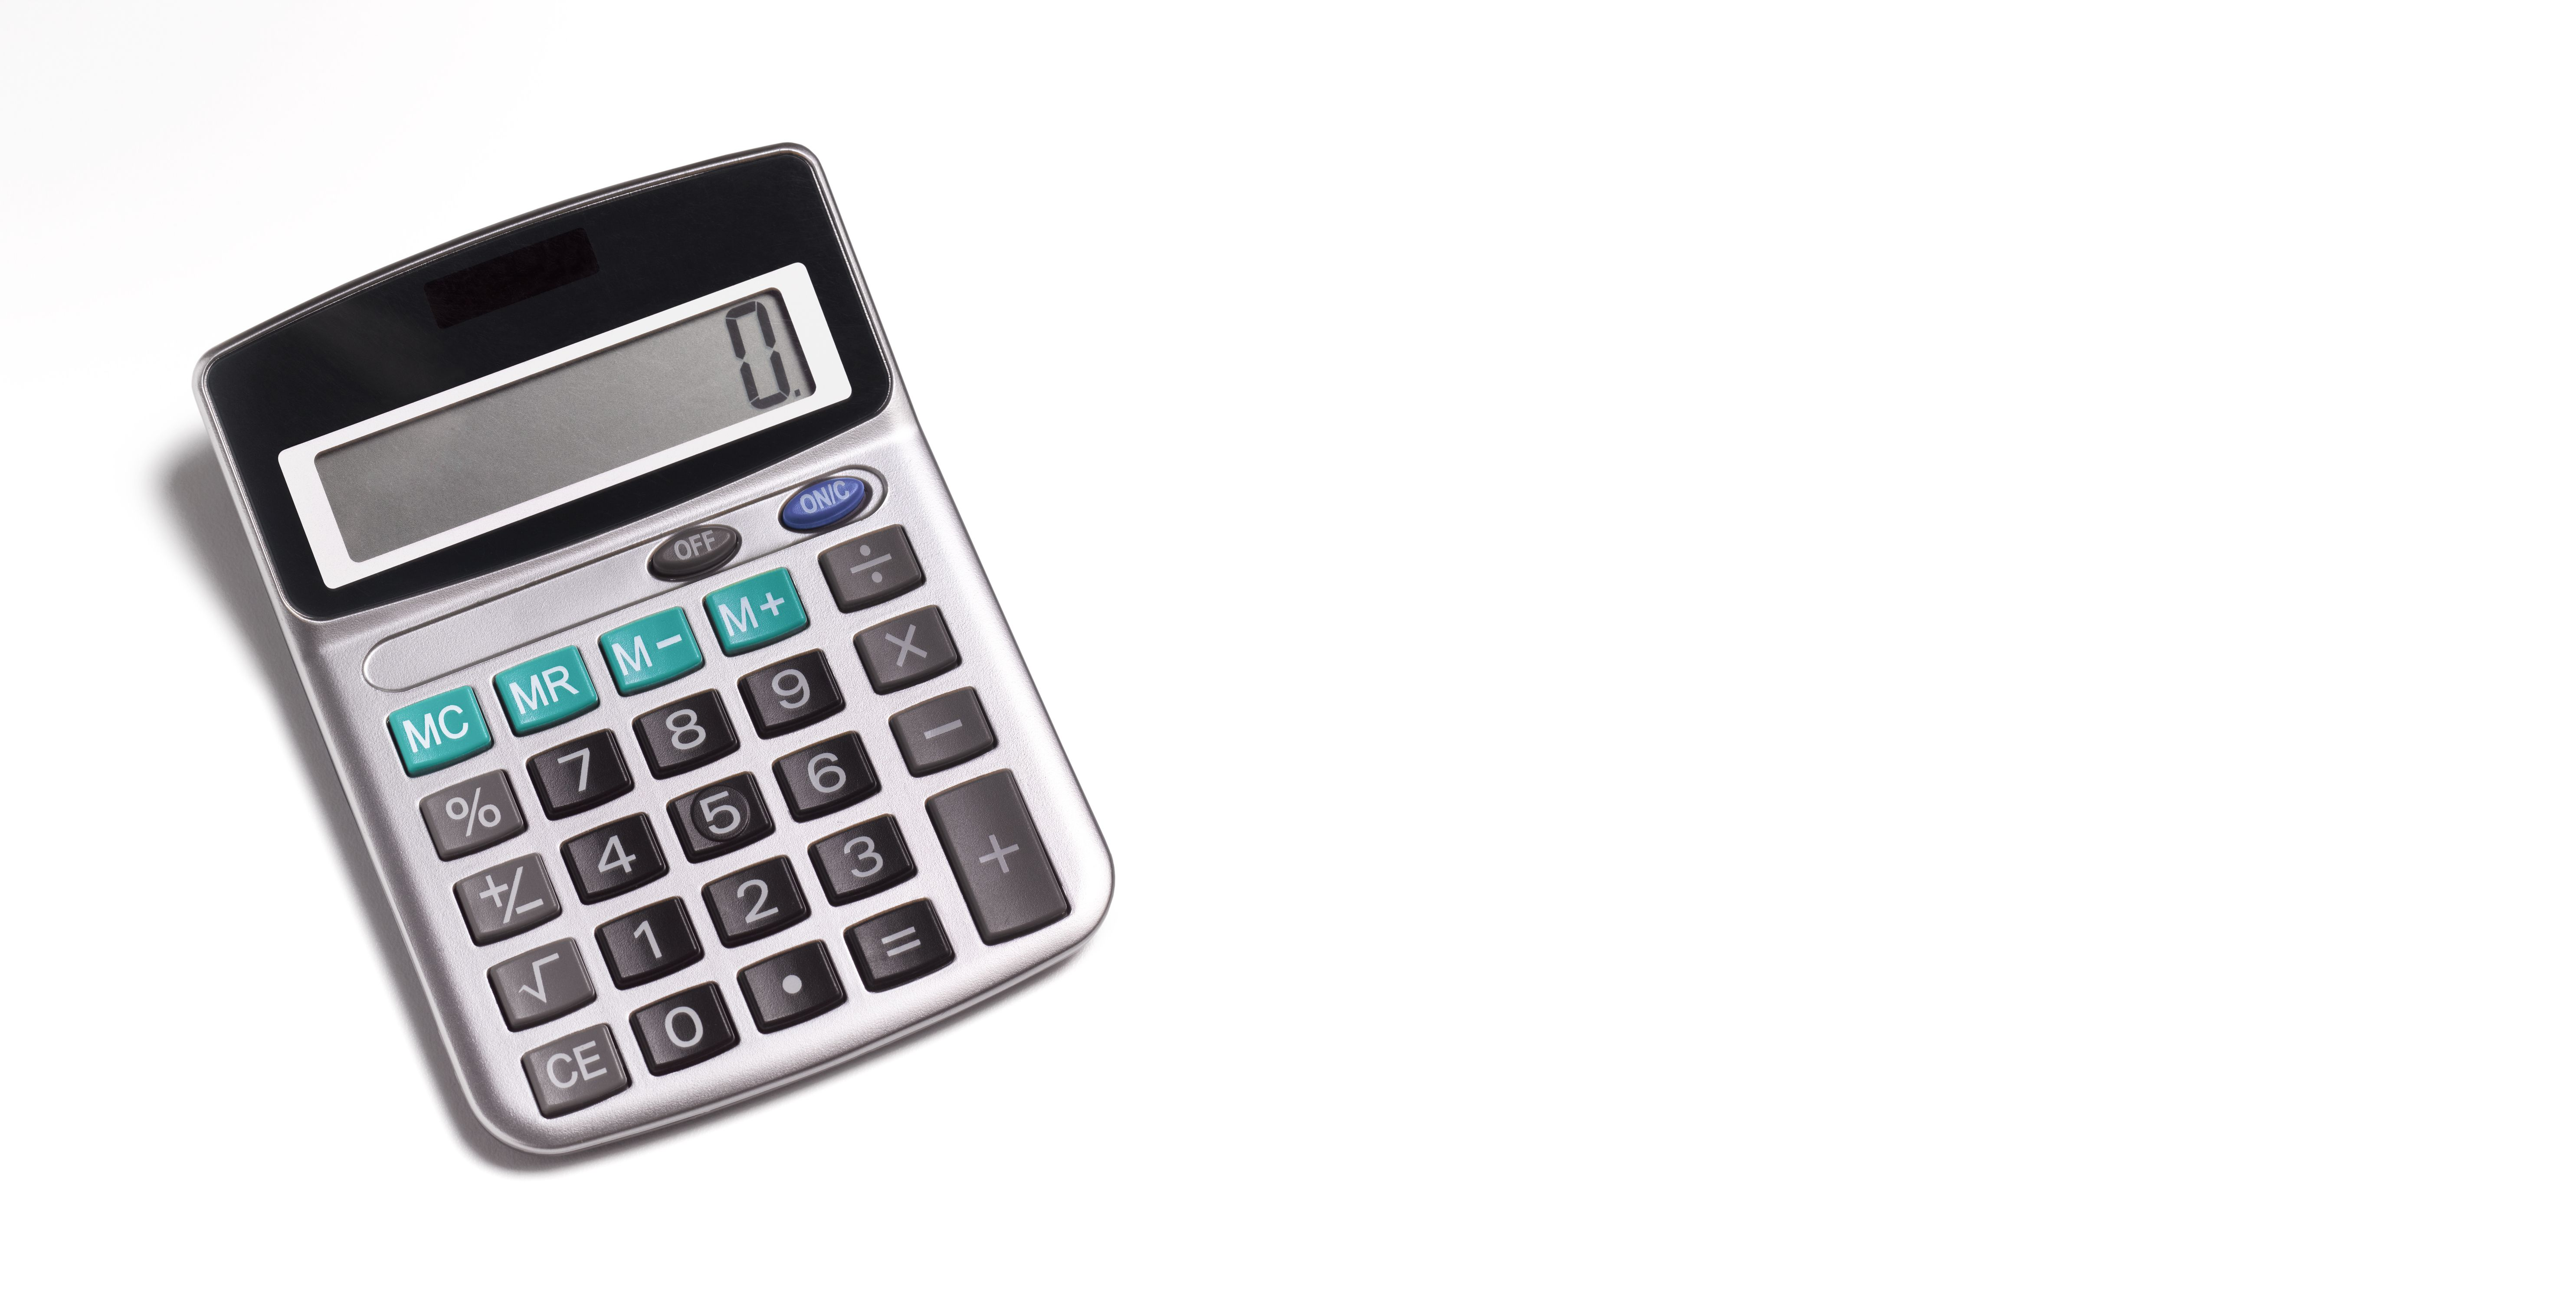 Dividing by zero will give you an error on your calculator.